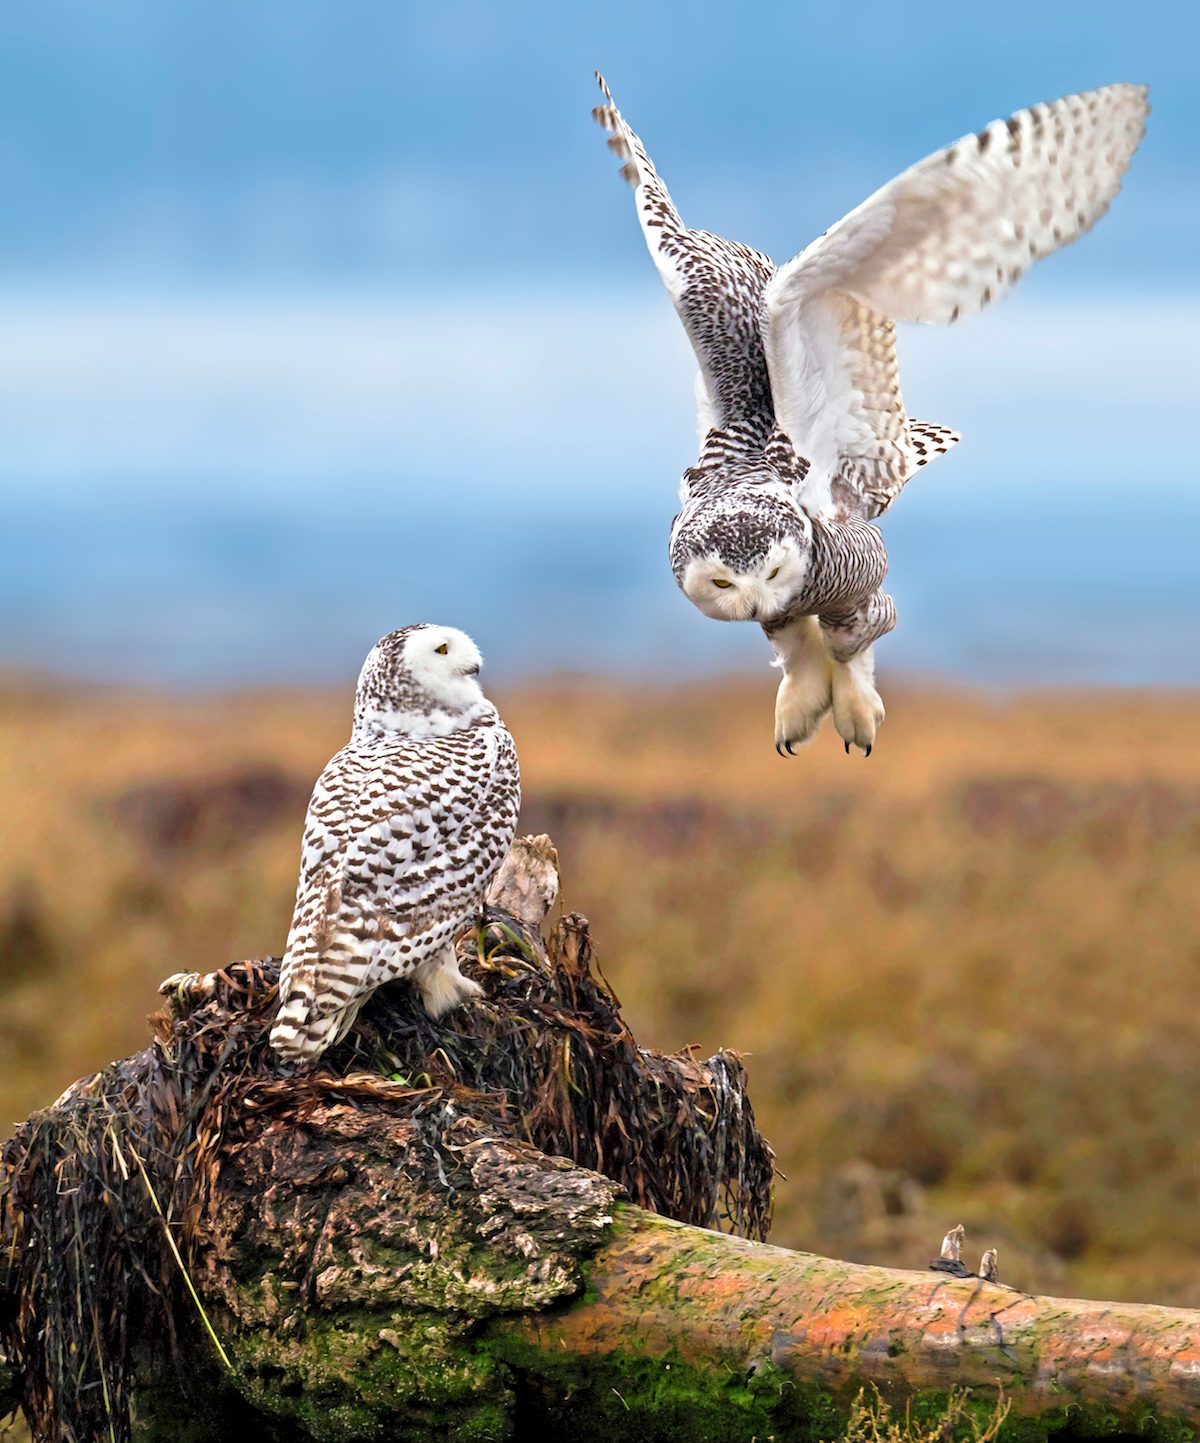 Two snowy owls in an open space.